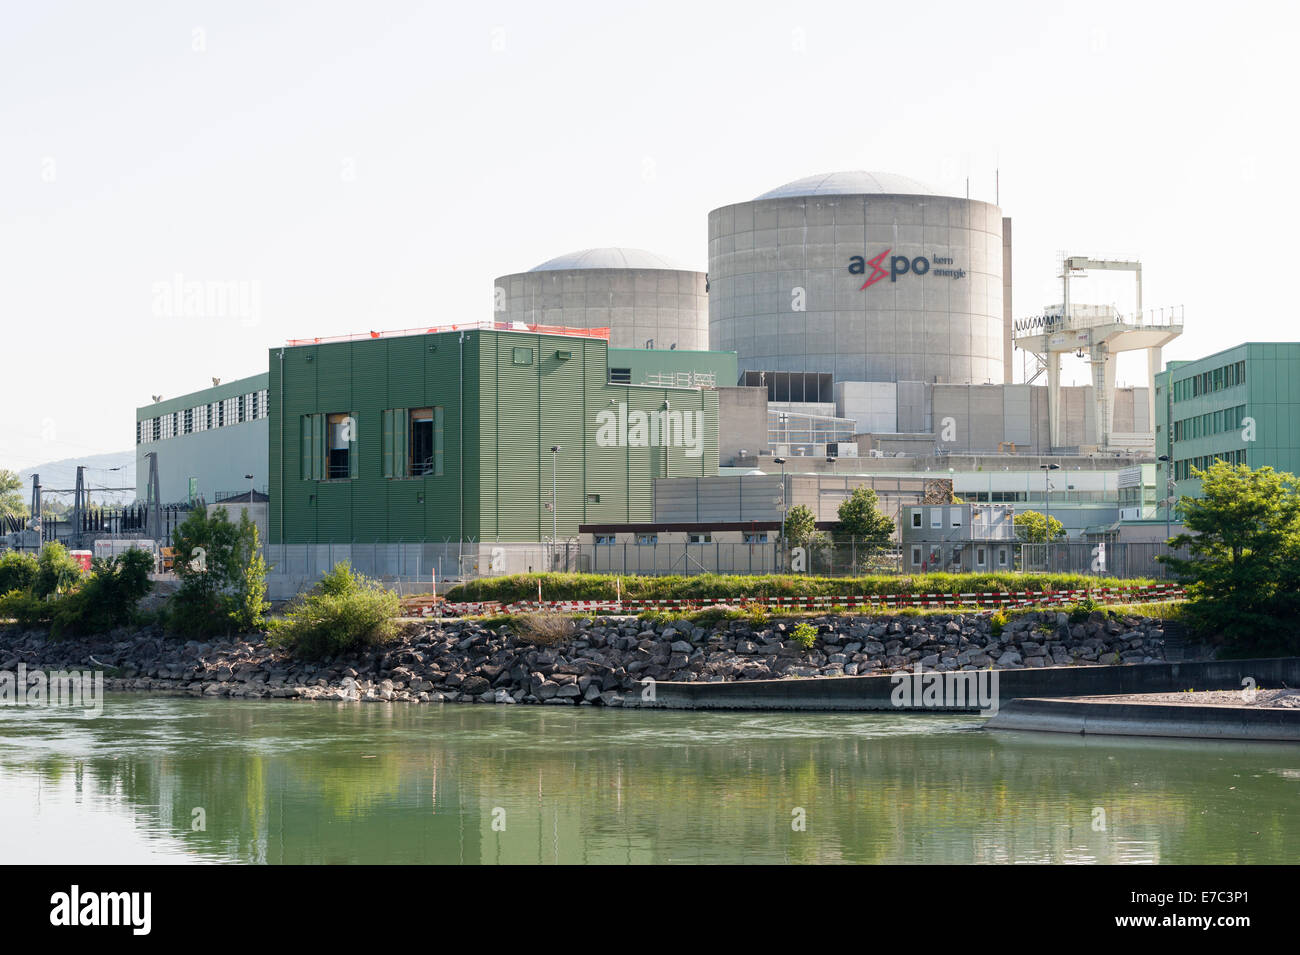 Nuclear power plant Beznau, Switzerland (canton Aargau), at the Aare river. - Stock Image